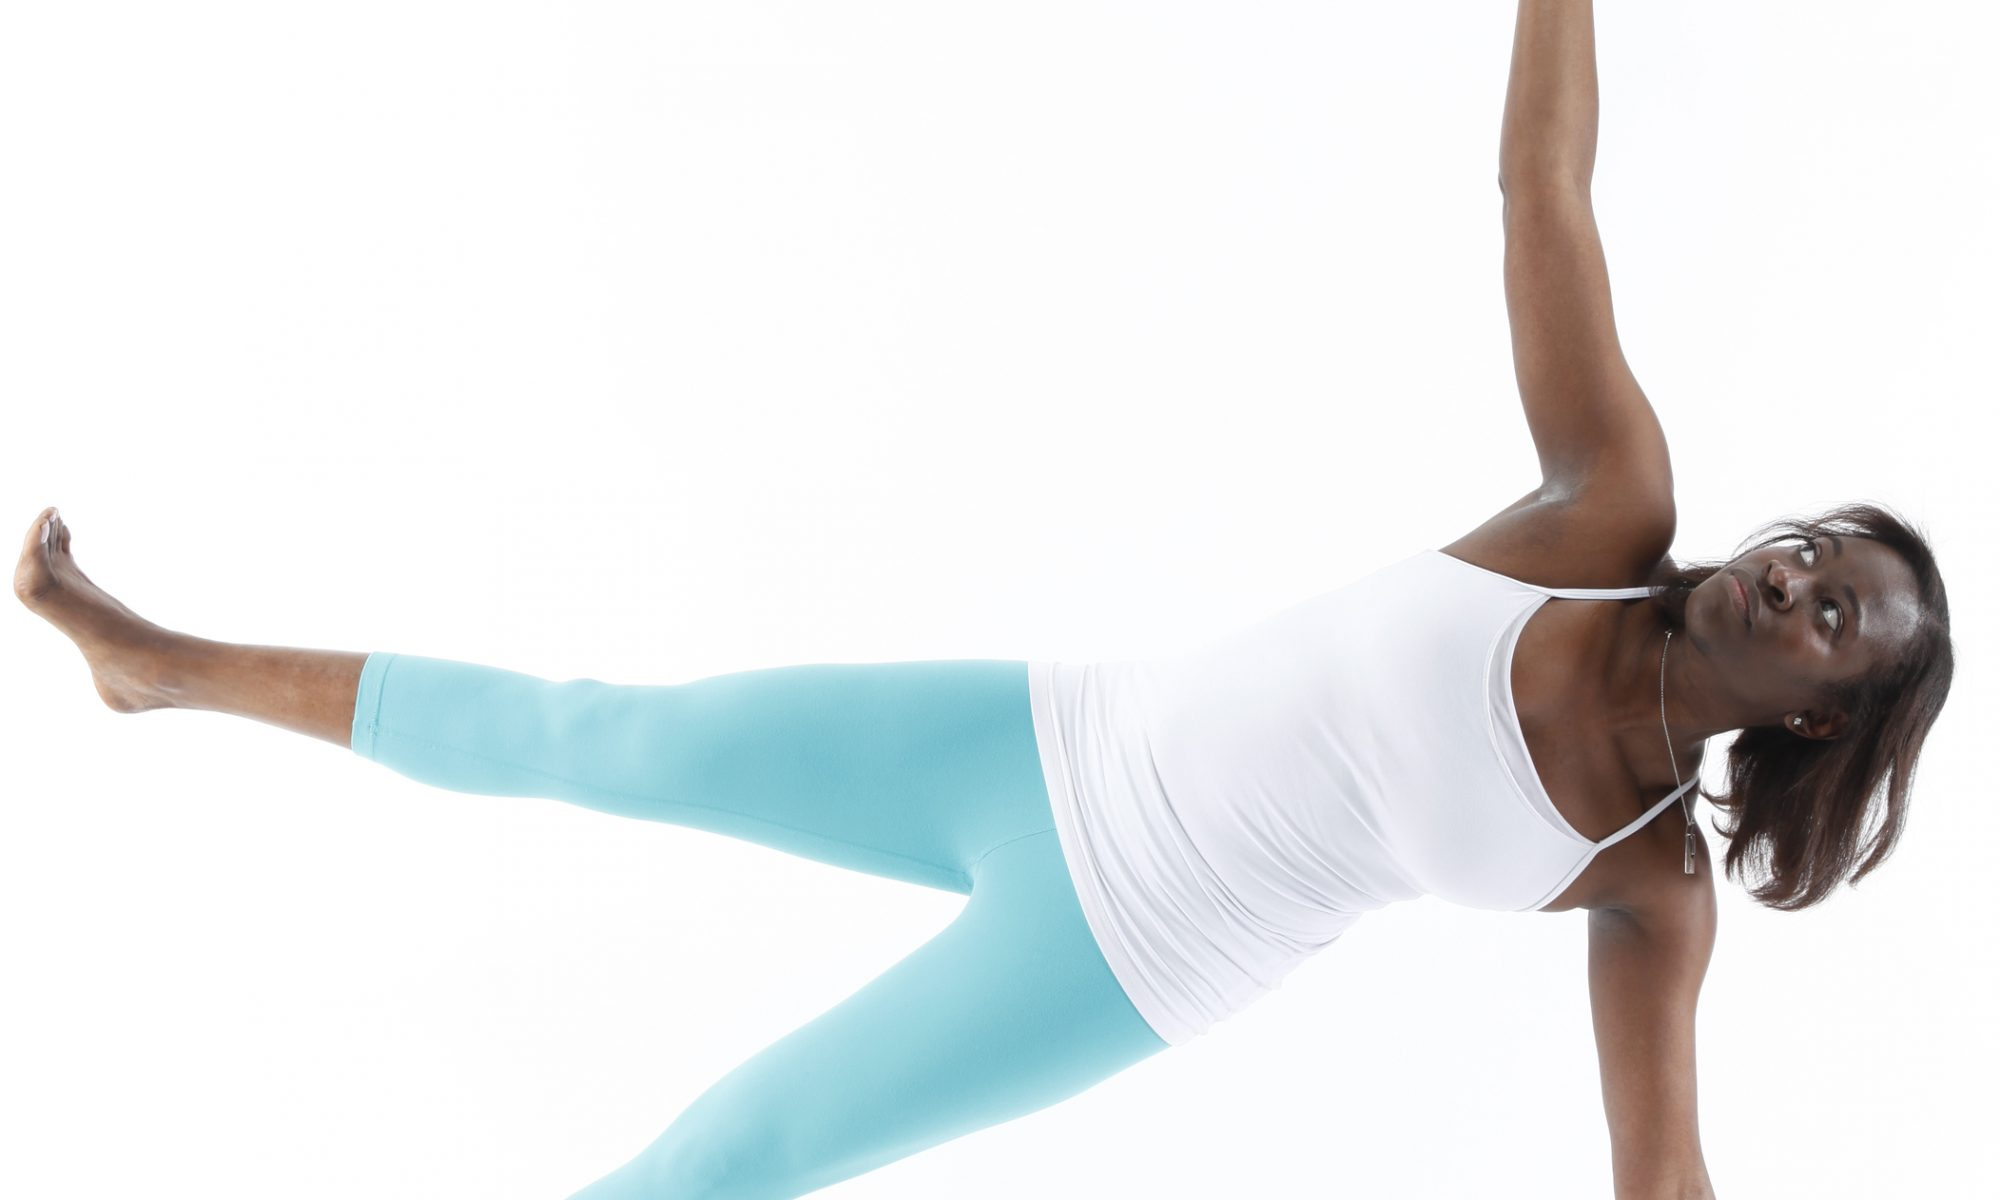 loosening-lululemon athletica [CC BY 2.0 (https://creativecommons.org/licenses/by/2.0)], via Wikimedia Commons